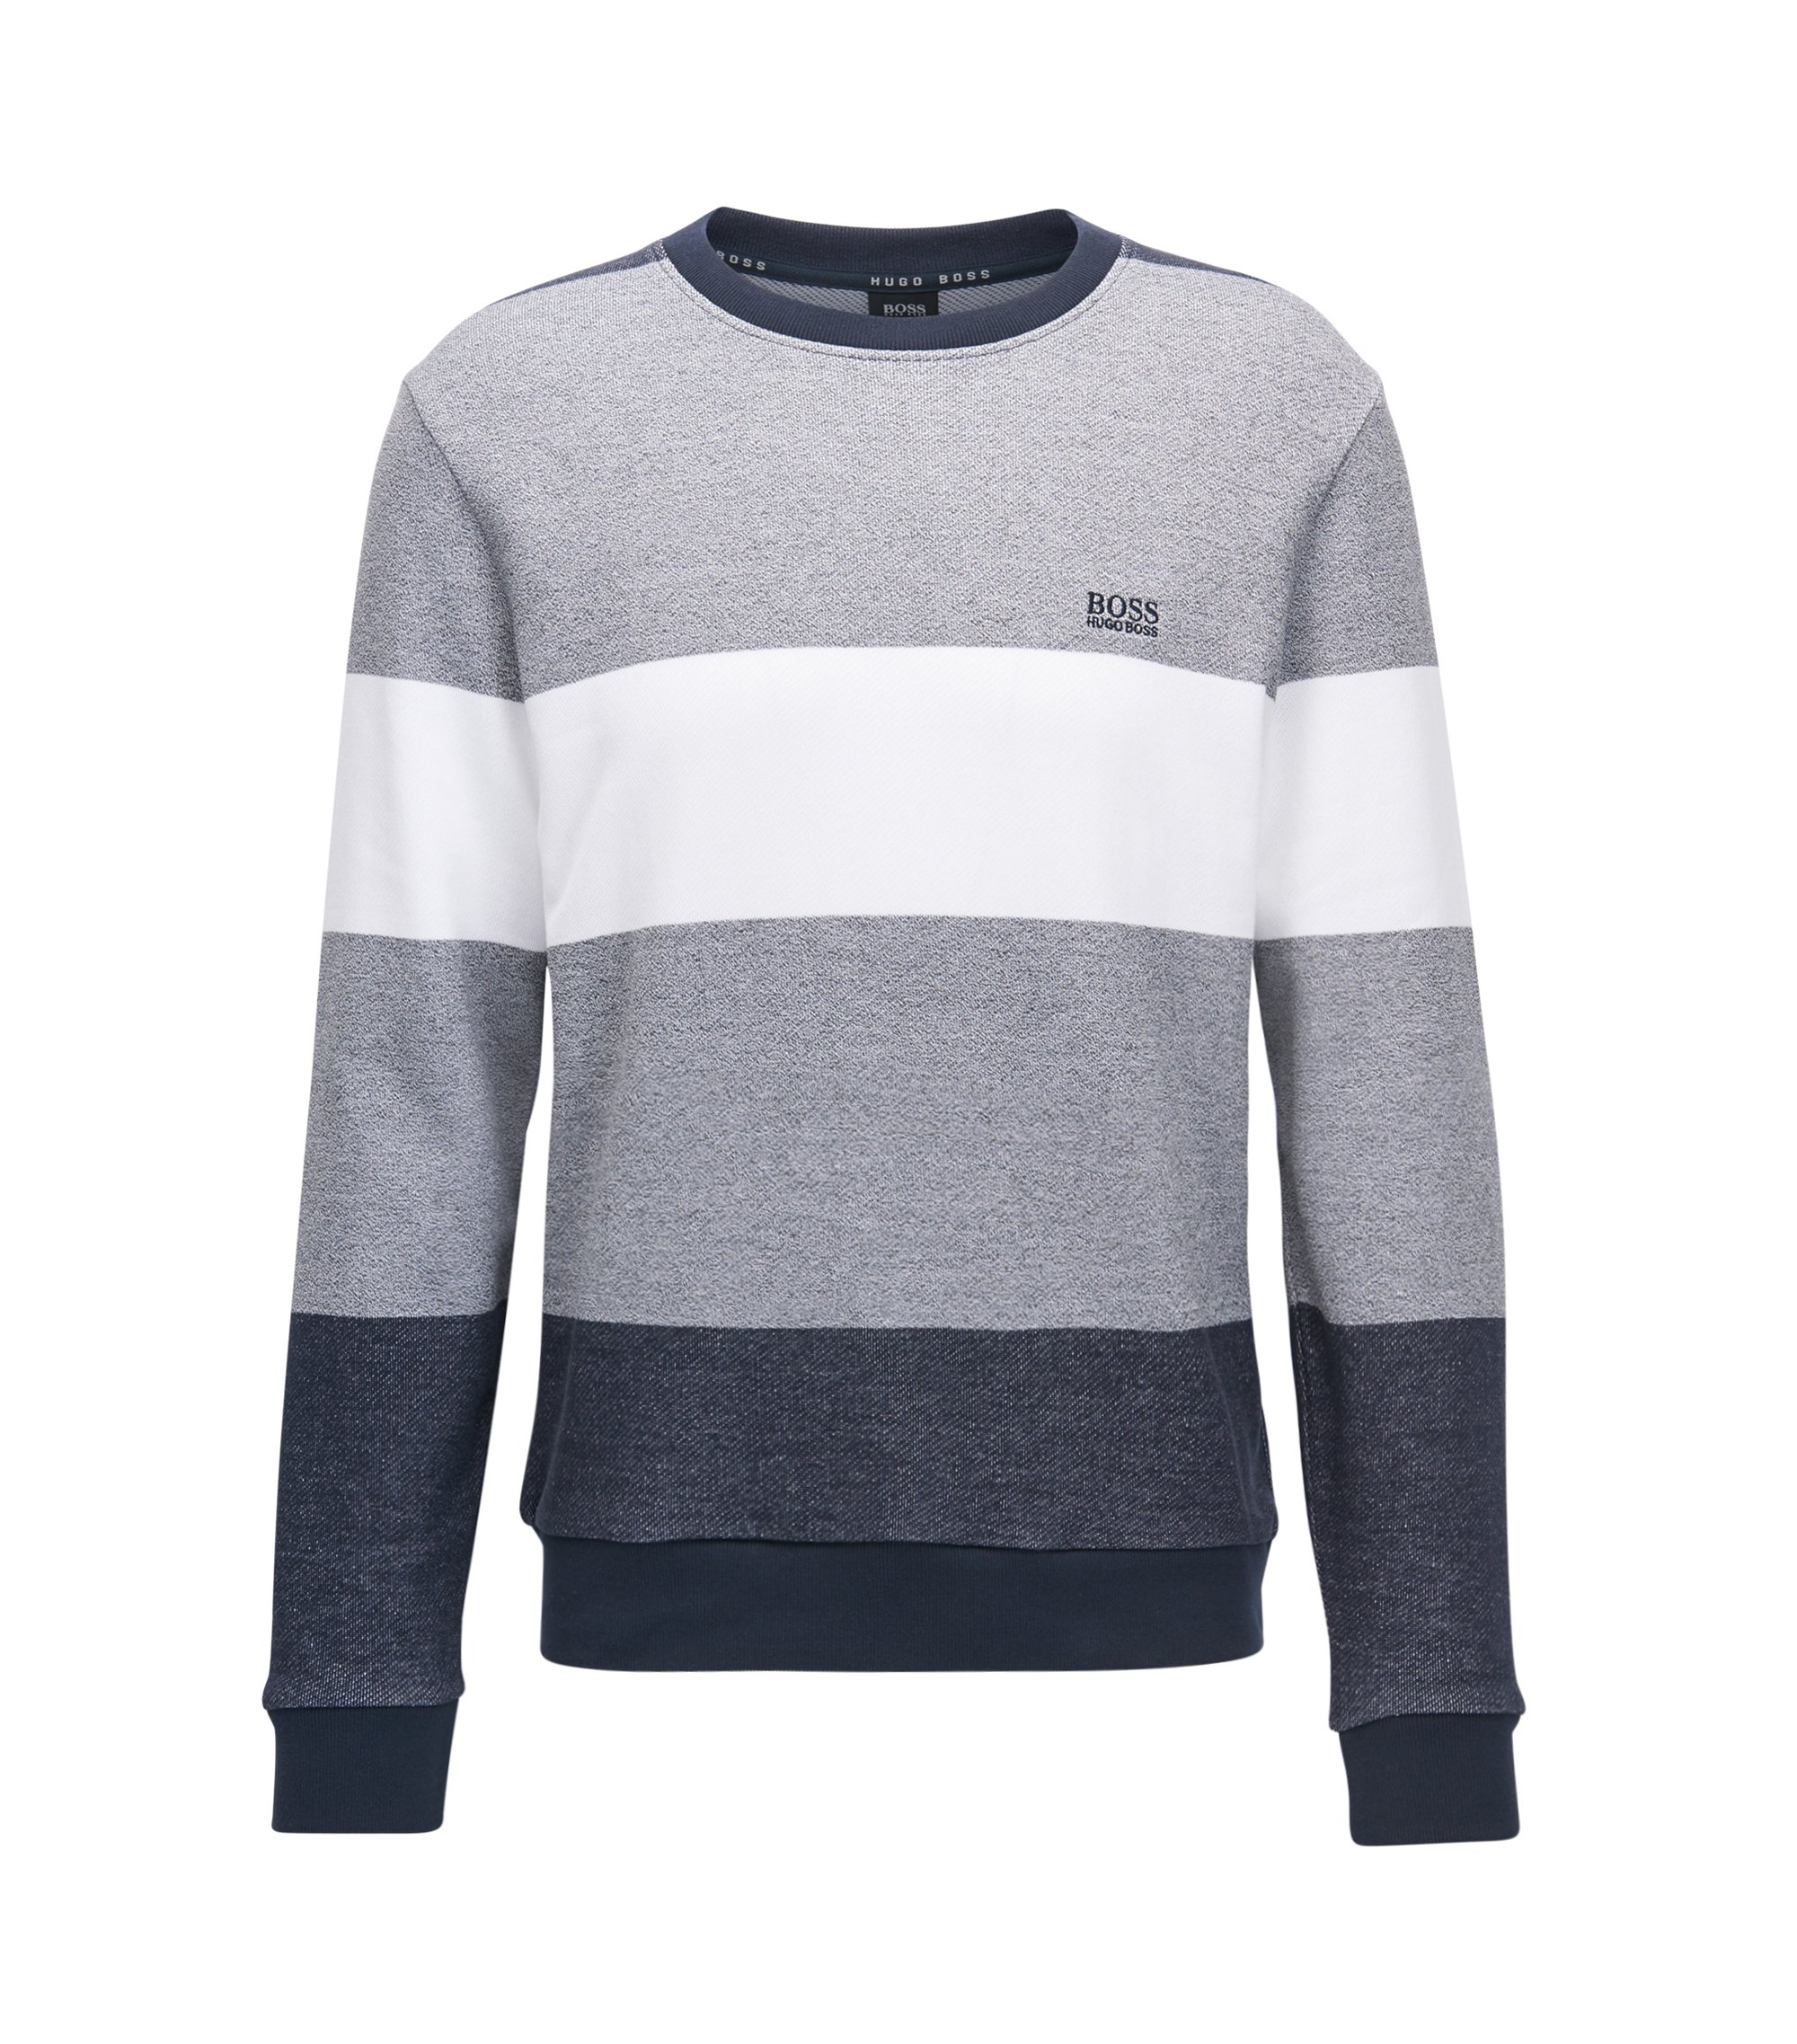 French Terry Colorblocked Cotton Sweatshirt | Nautical Sweatshirt, Grey